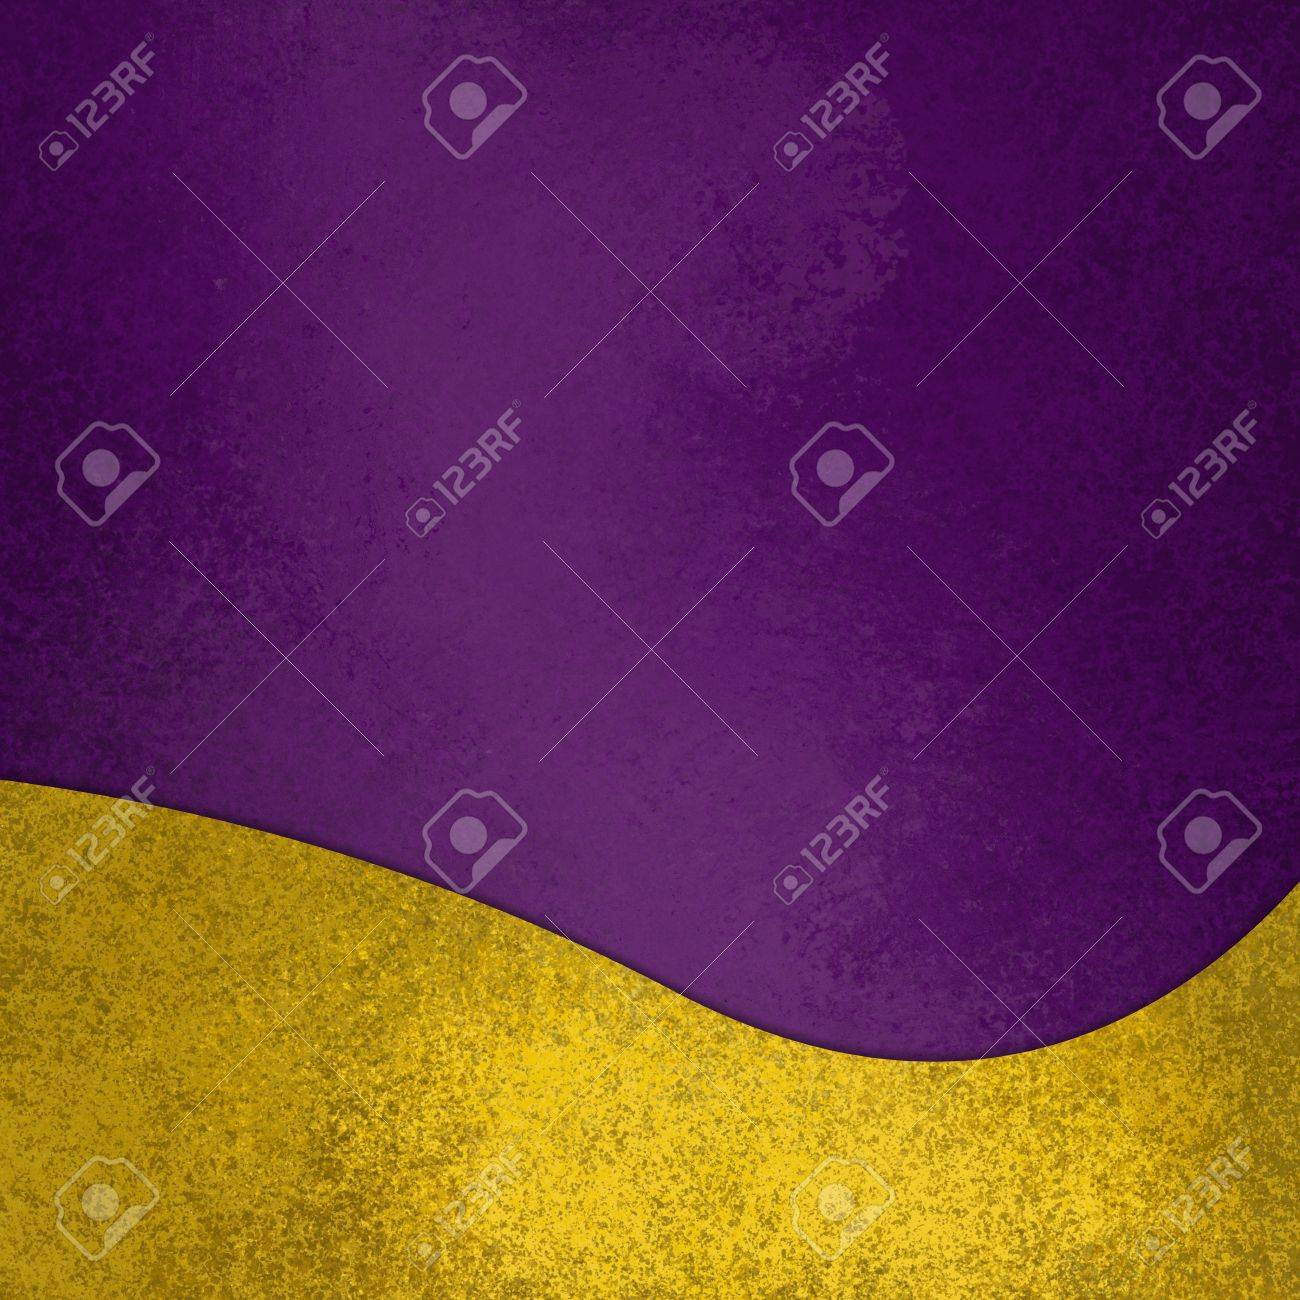 purple background with fancy elegant wavy gold design element on bottom border, abstract waved yellow decoration - 76988938